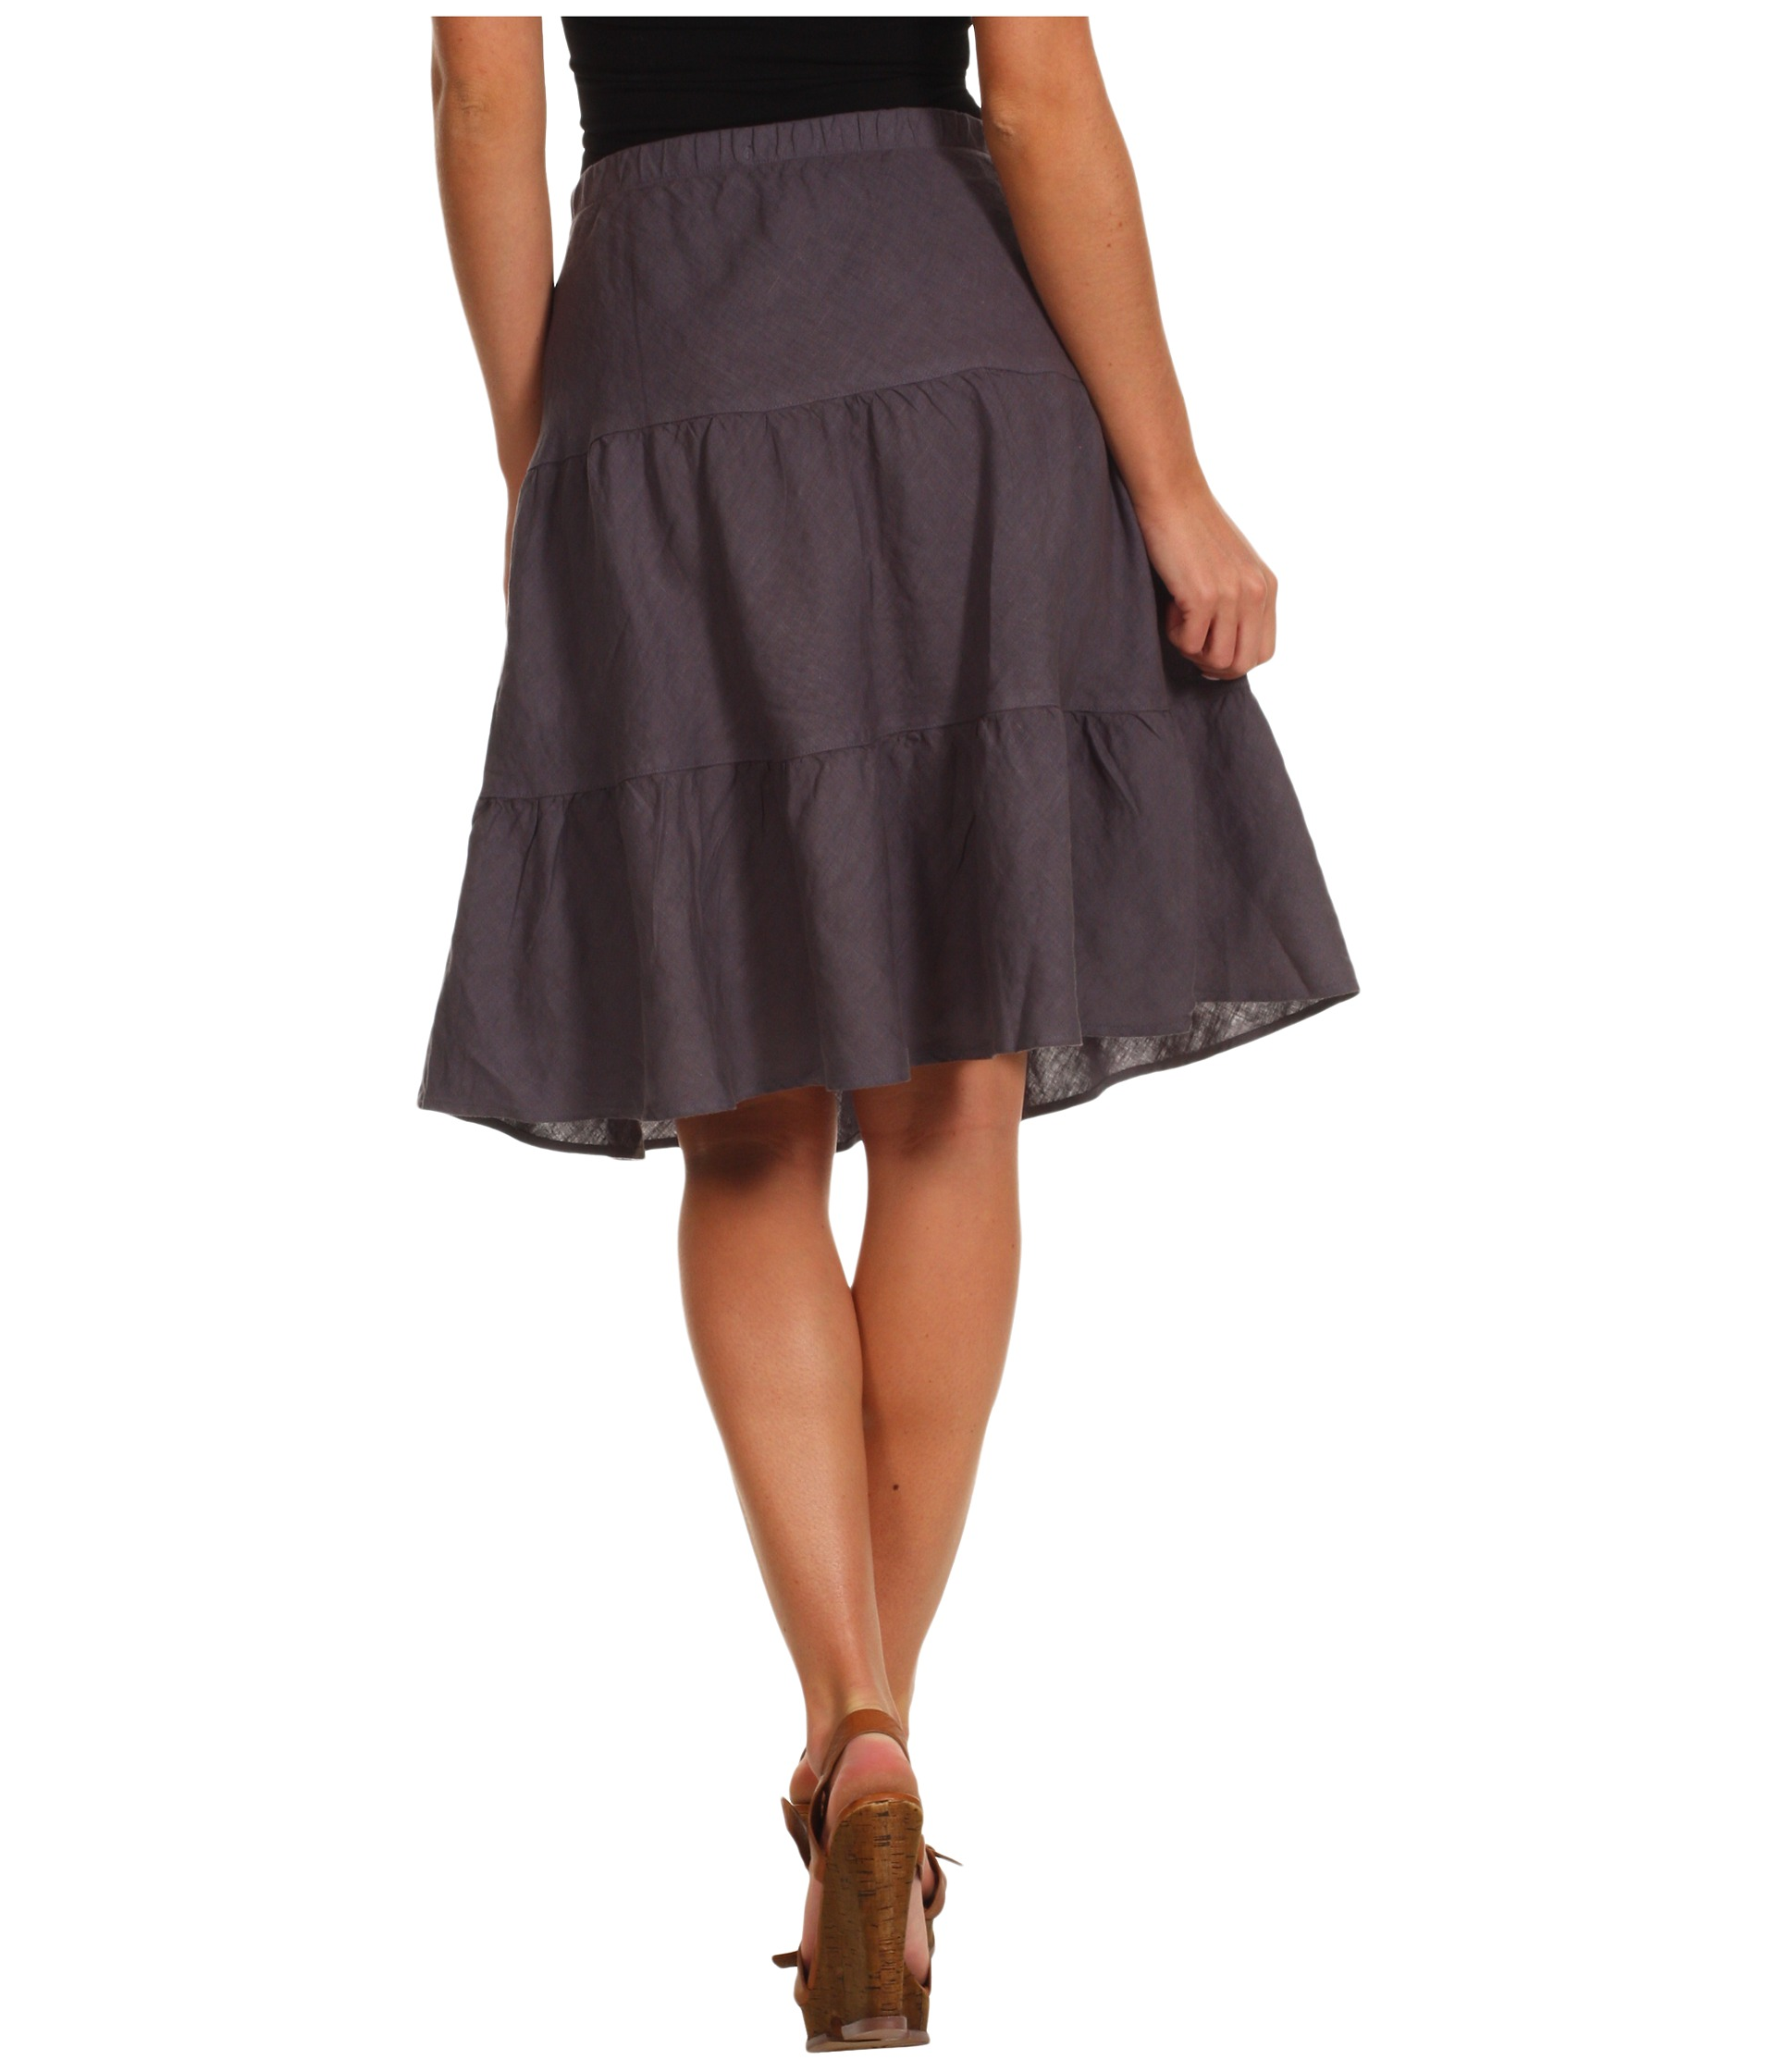 Find great deals on eBay for knee long skirts. Shop with confidence.